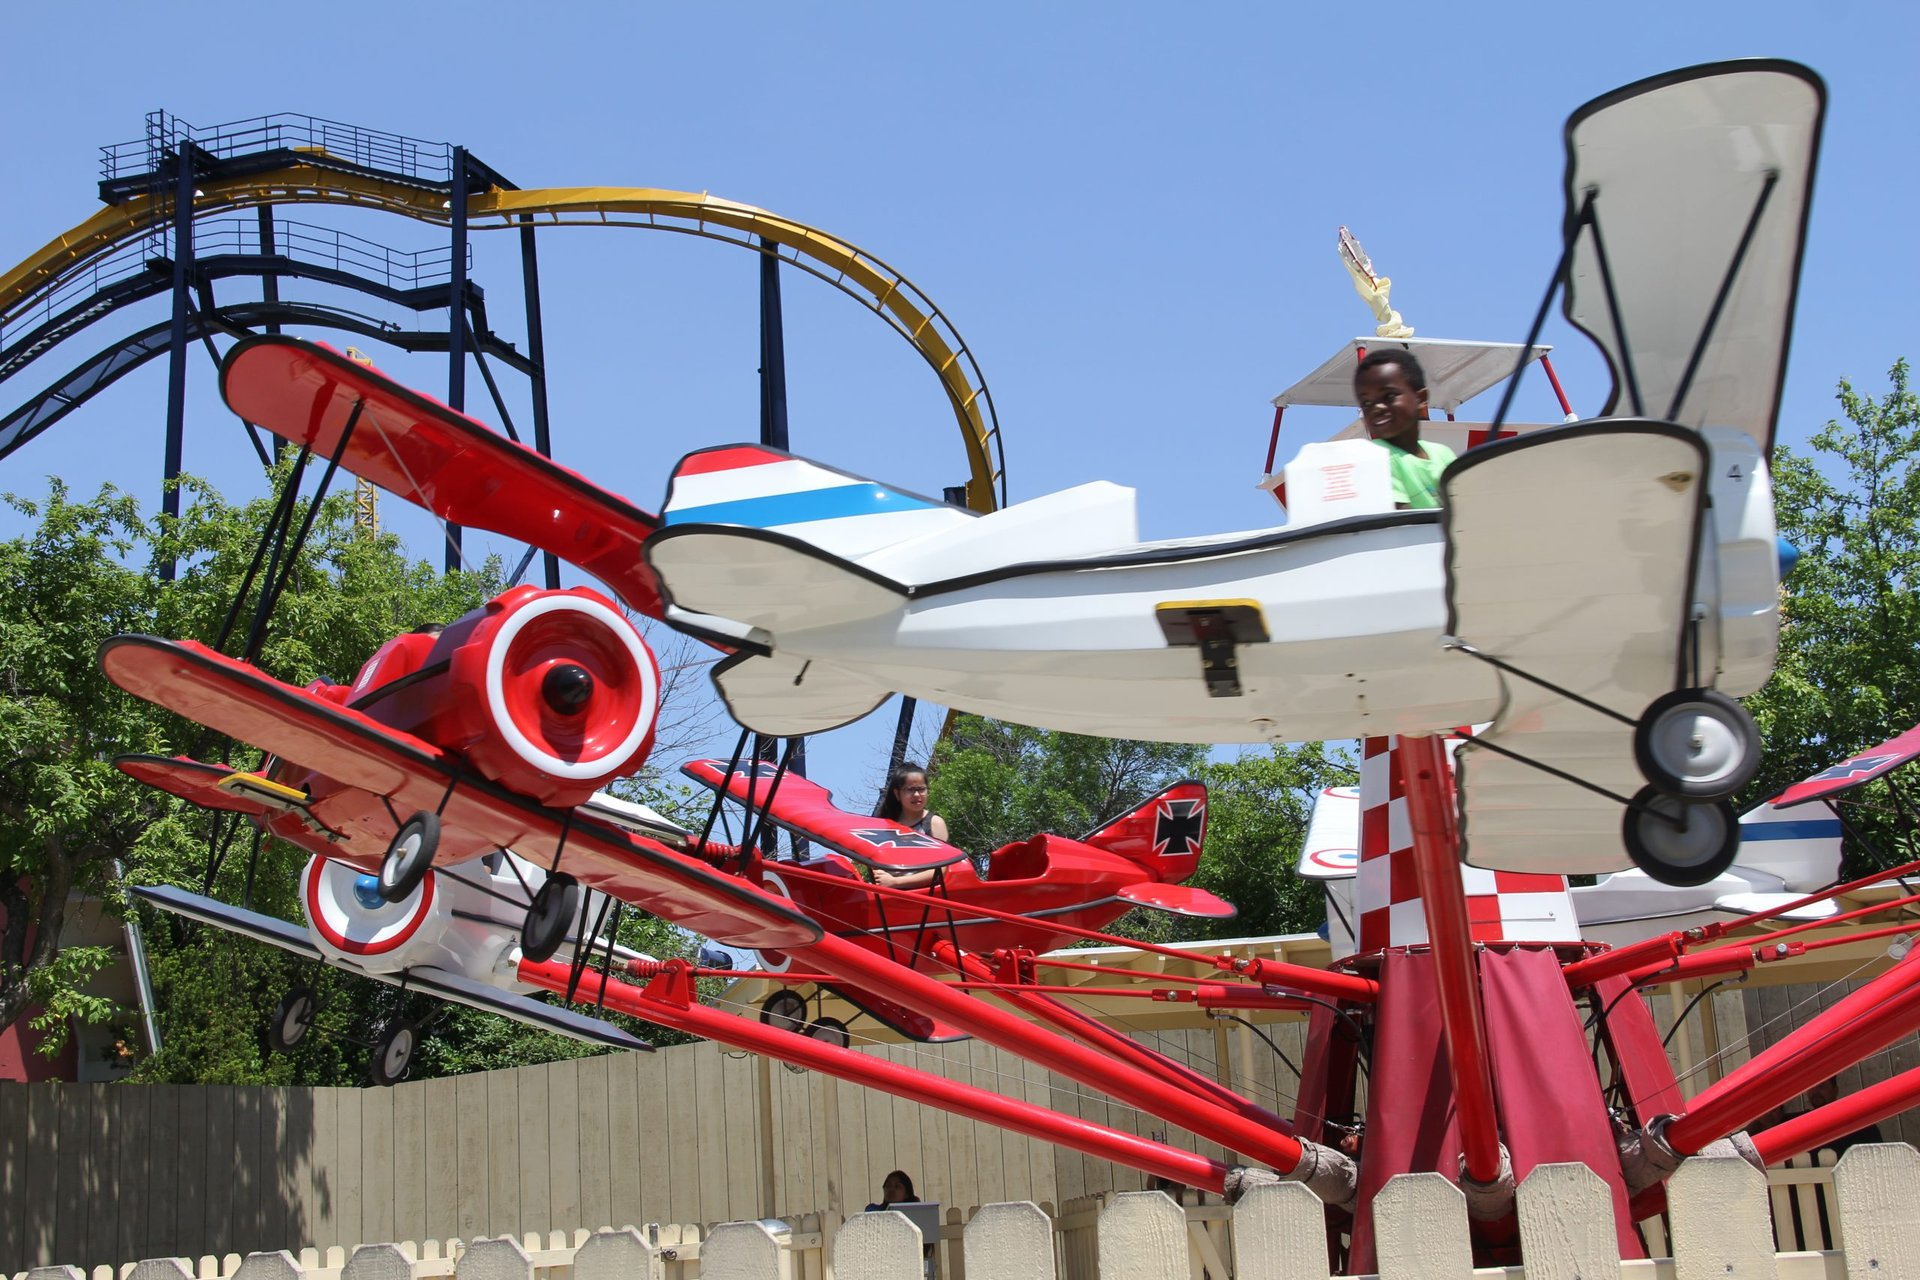 Red baron planes with kids riding on them at Six Flags